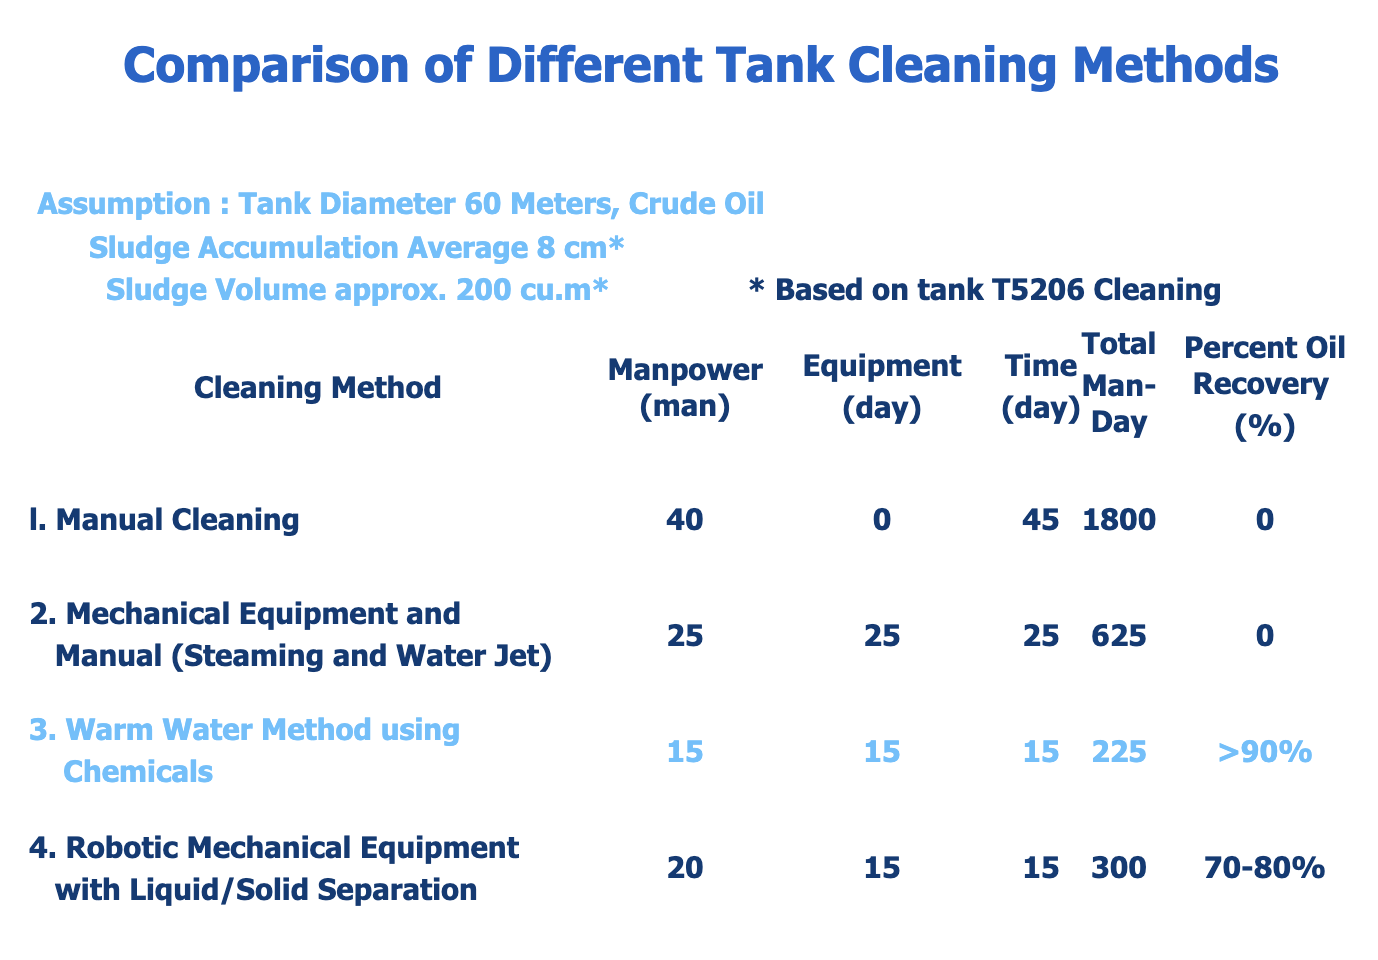 Tank Cleaning Methods Comparison